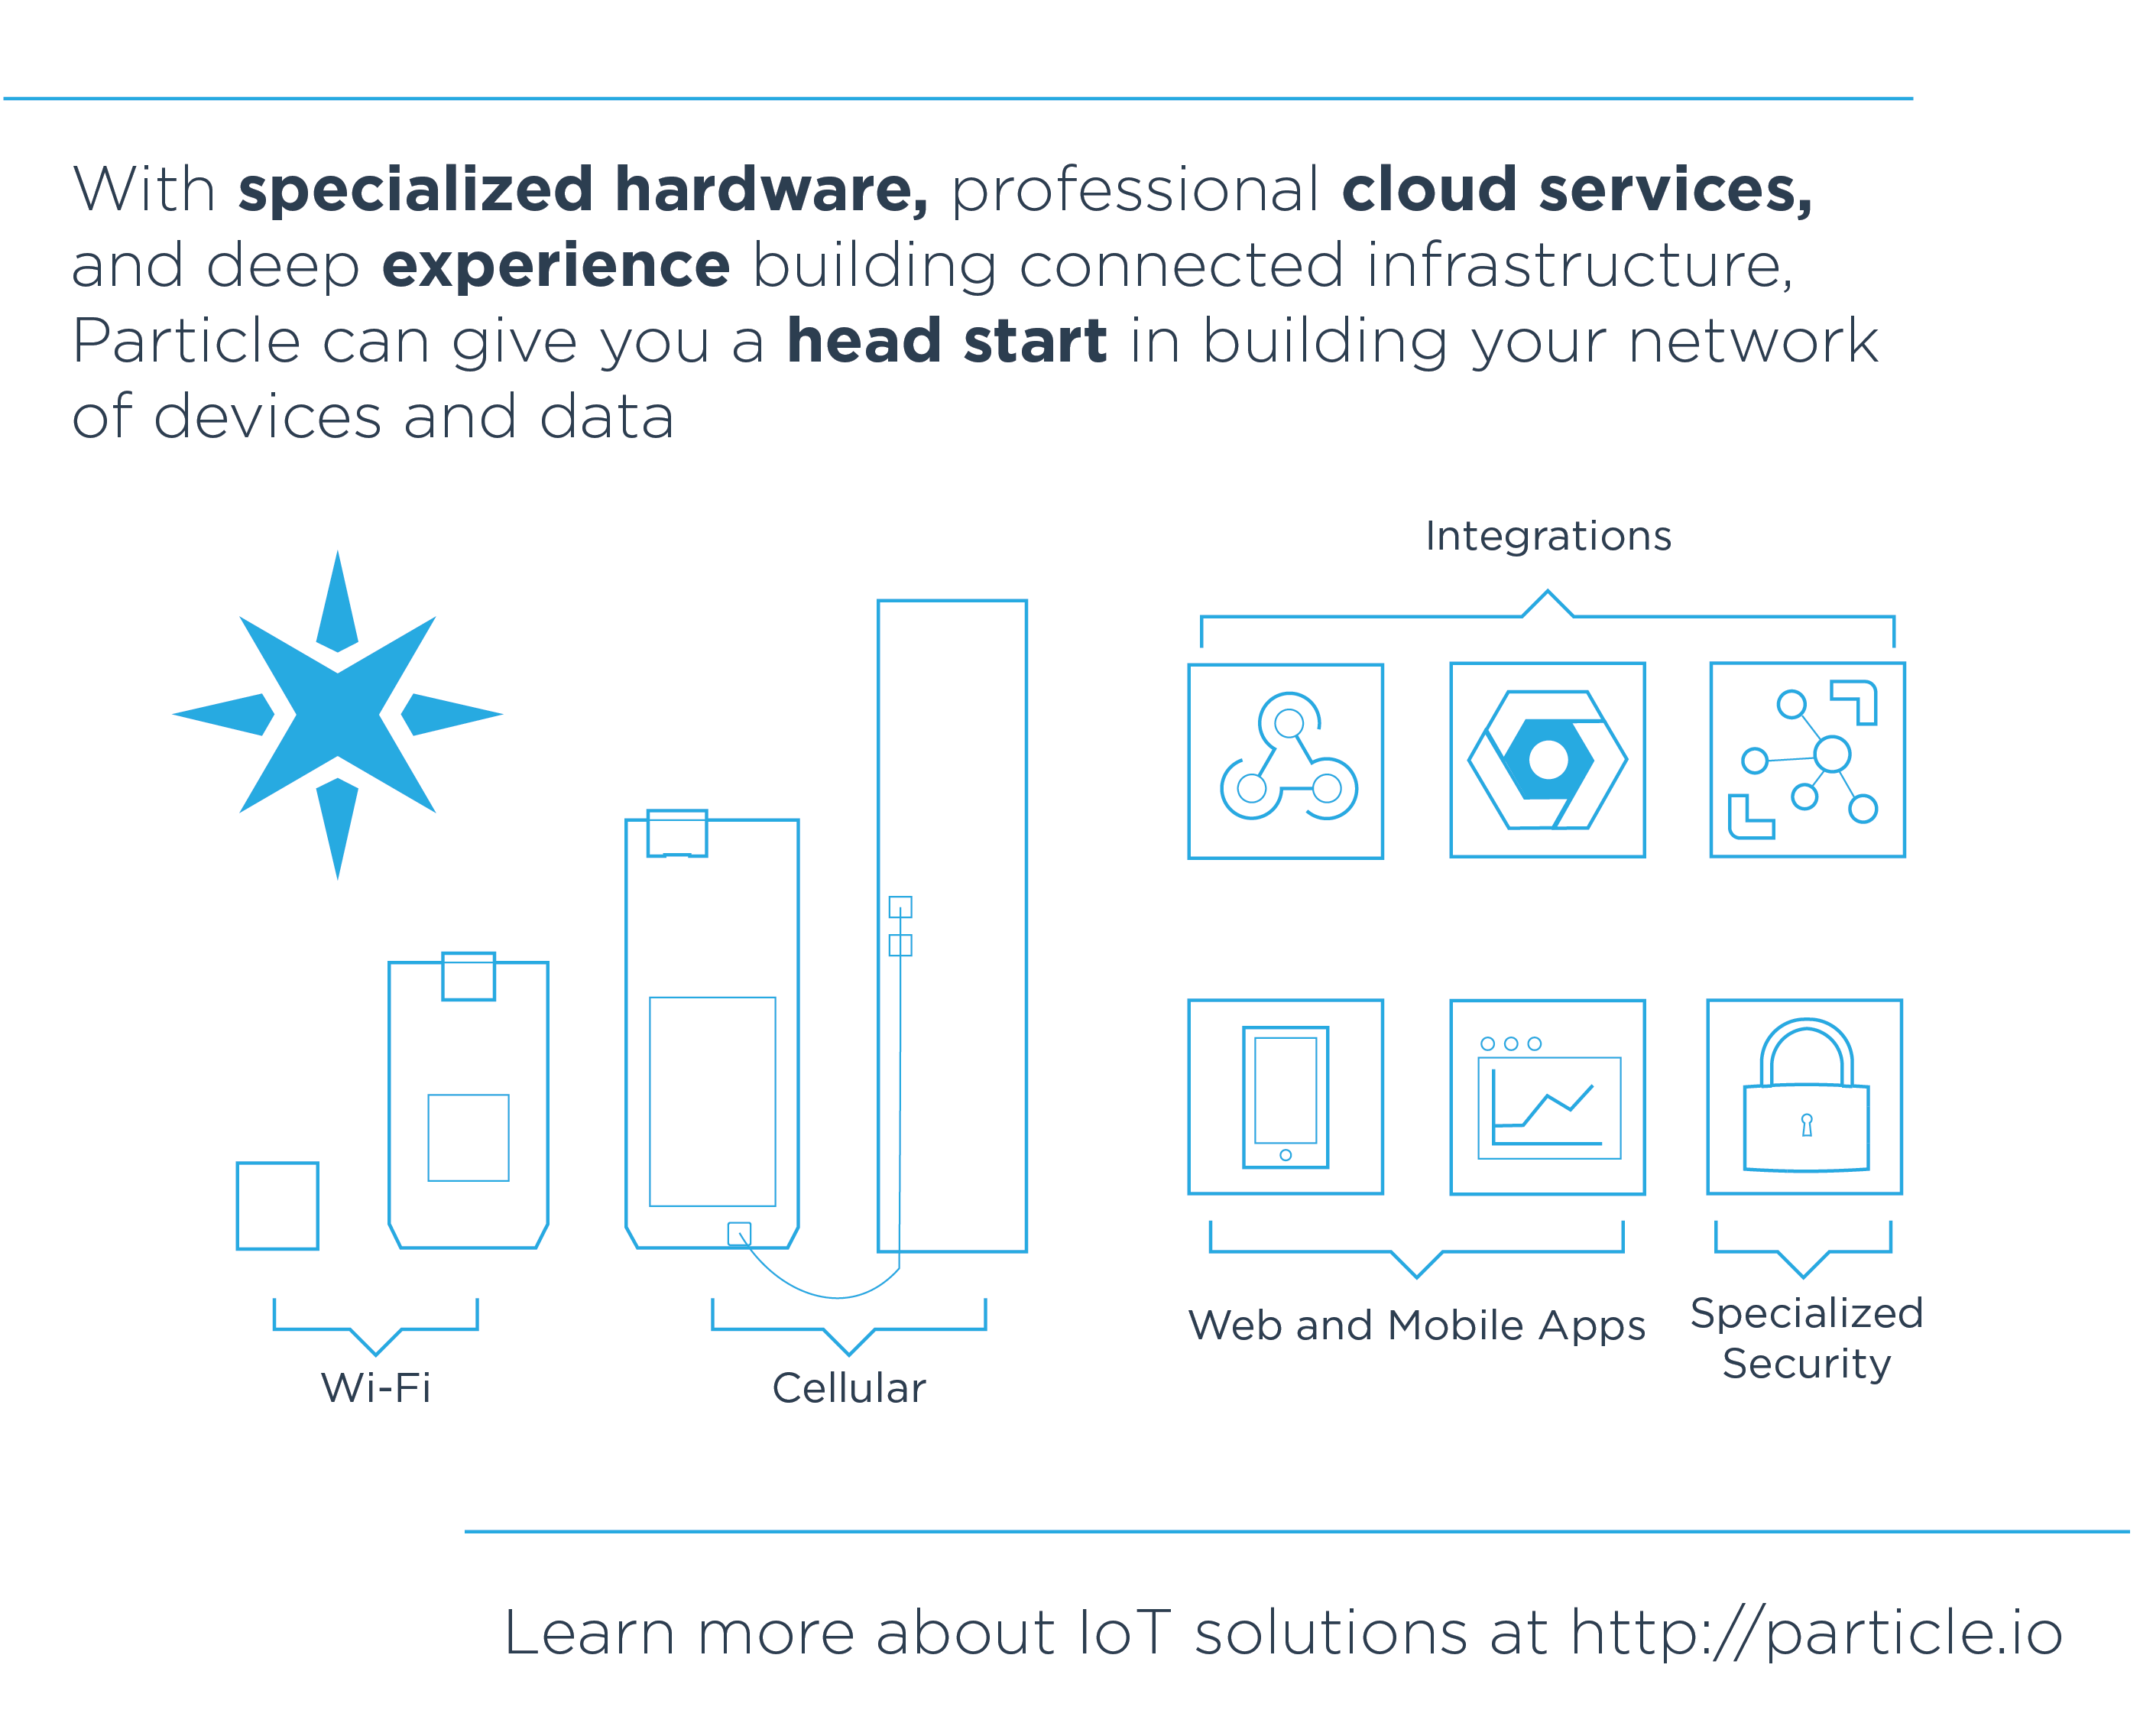 With specialized hardware, professional cloud services, and deep experience building connected infrastructure, Particle can give you a head start in building your network of devices and data.